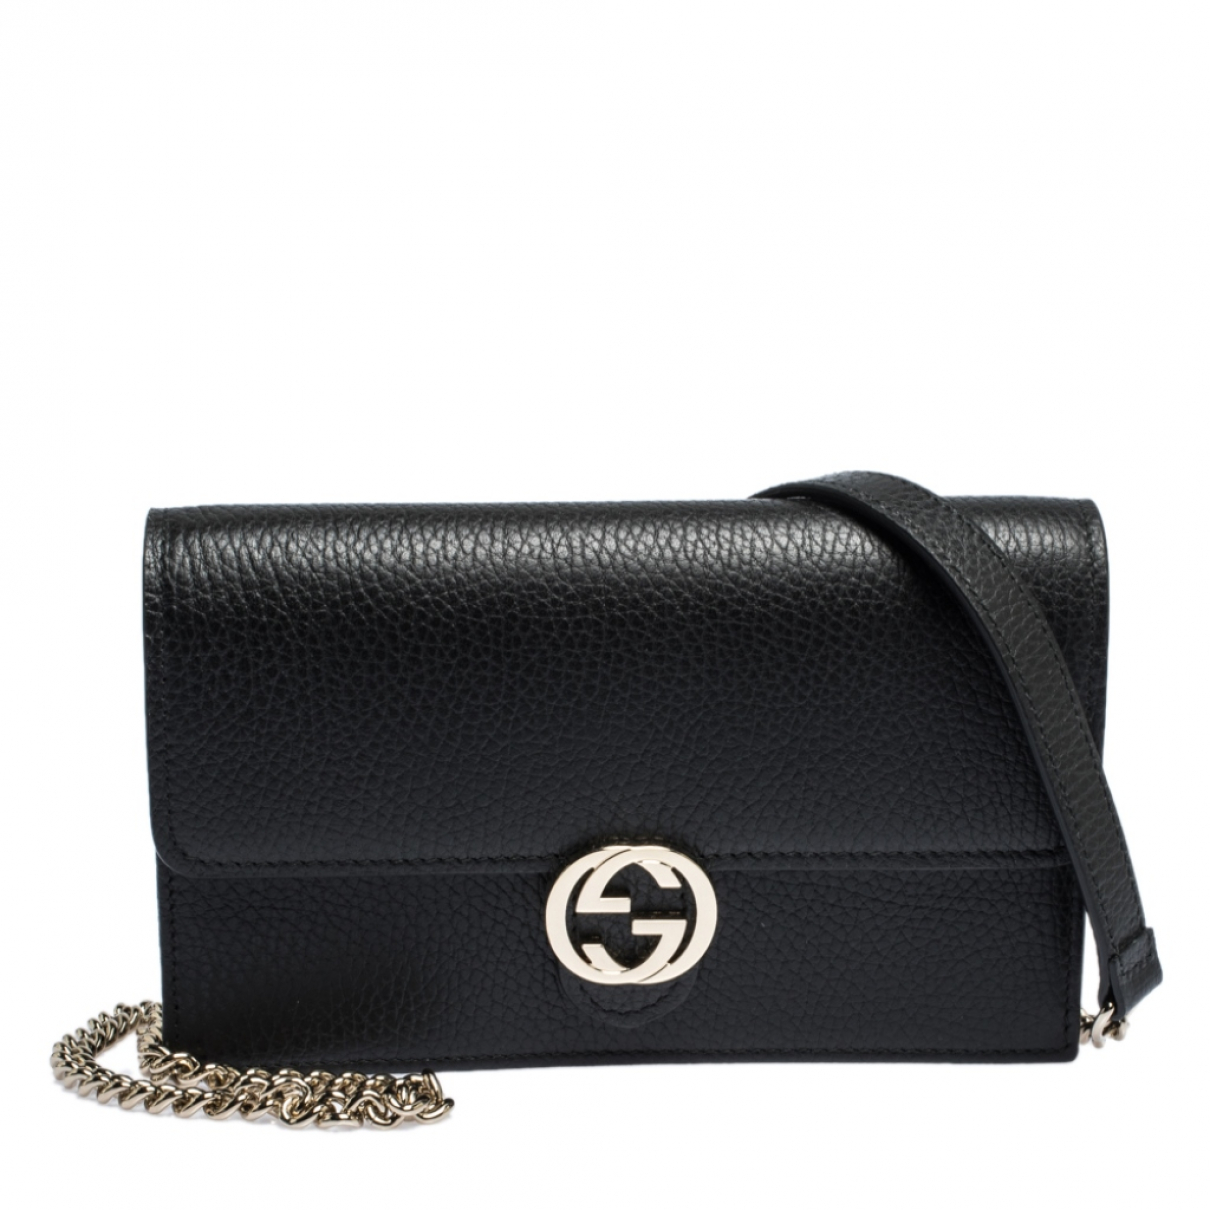 Gucci N Black Leather wallet for Women N